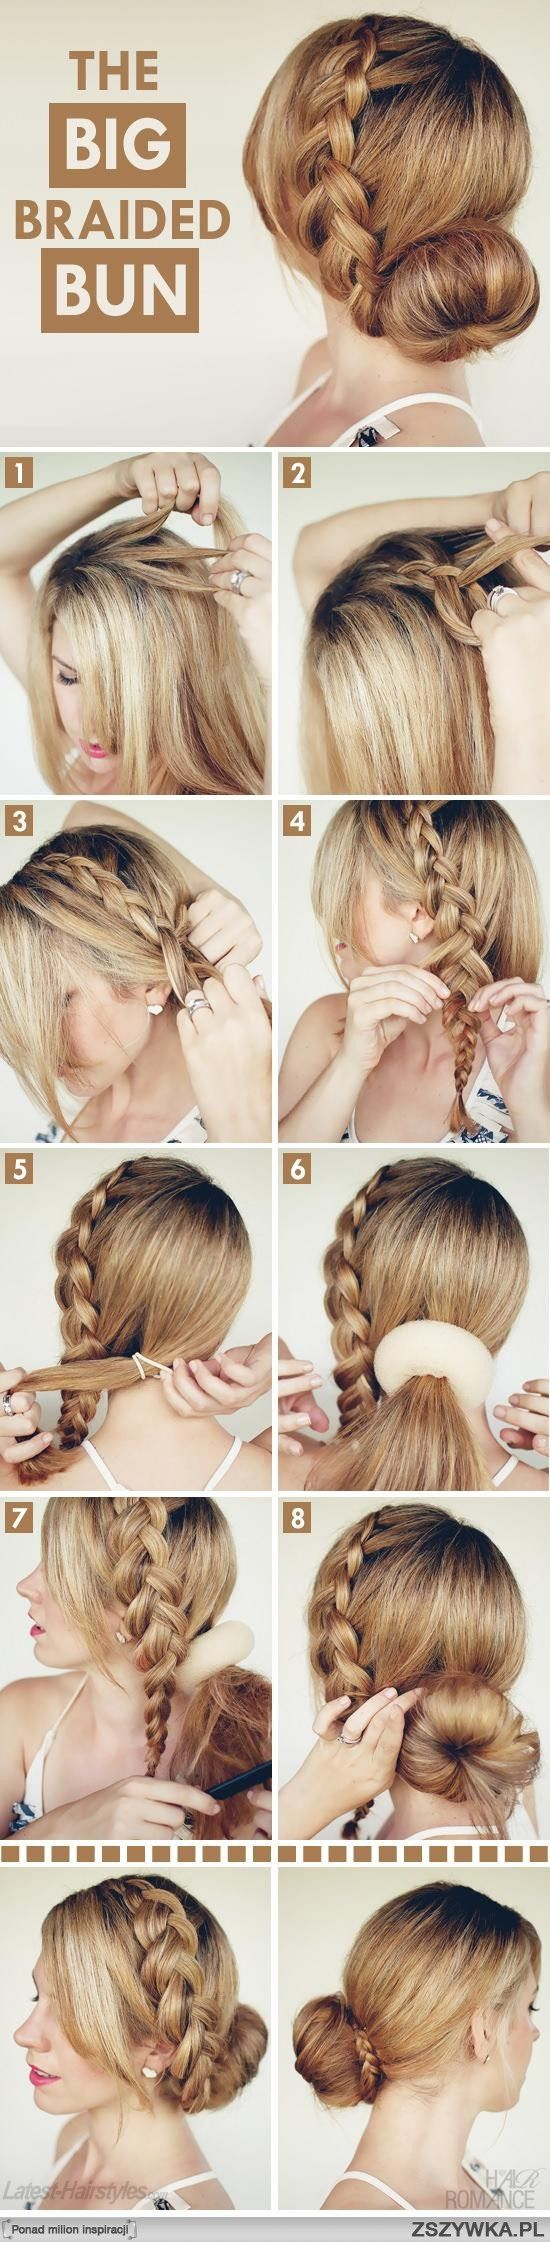 Big Braided Bun for the long-haired people in my house.